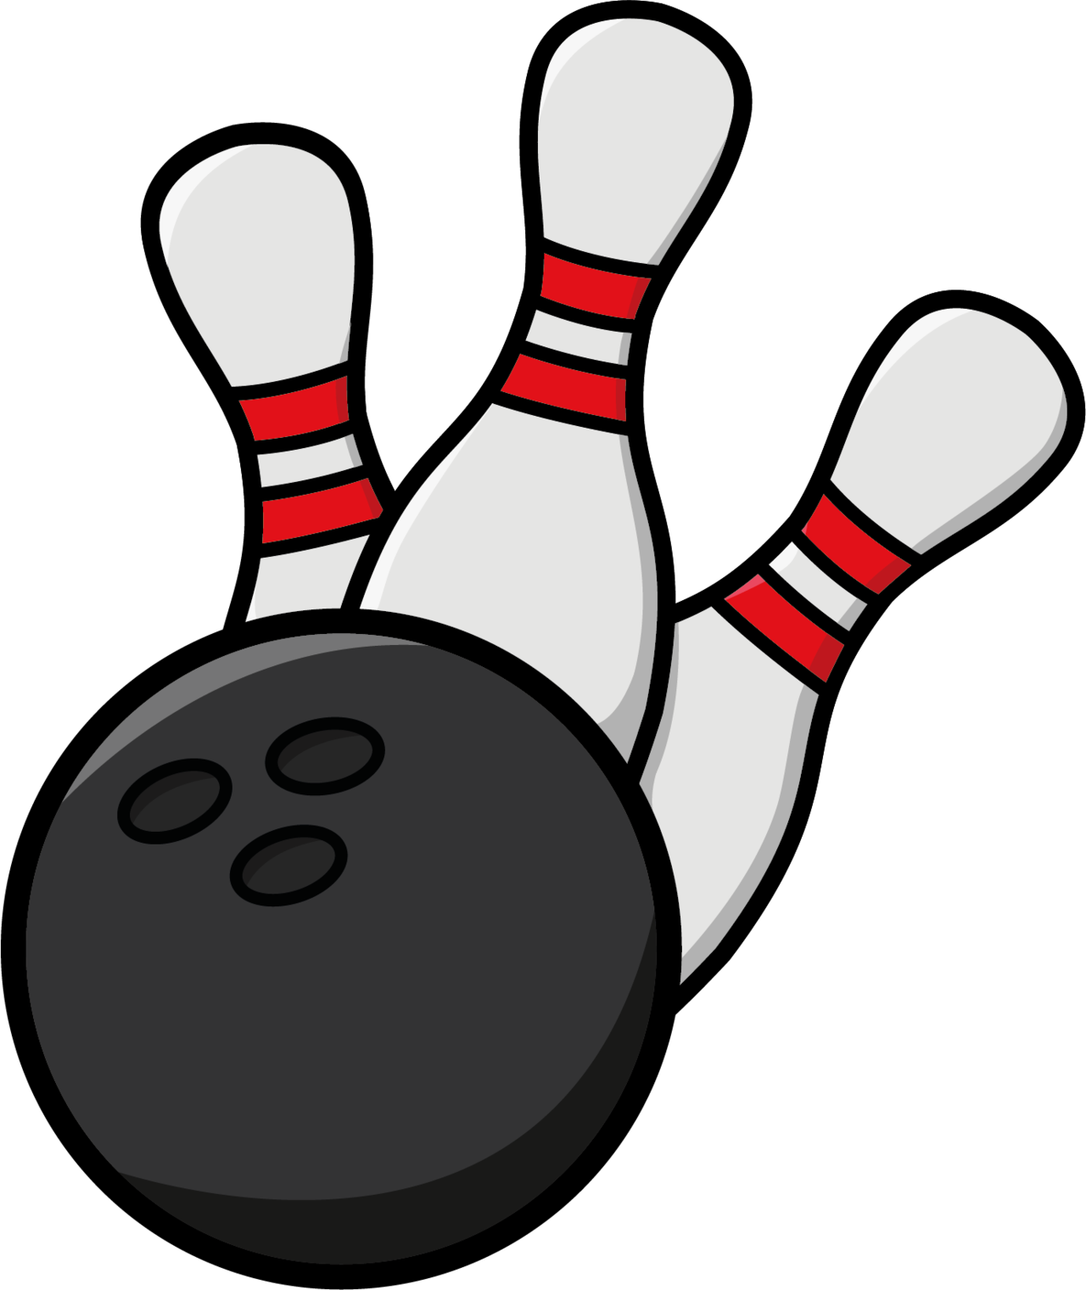 Bowling clipart pizza. Upcoming events red bank